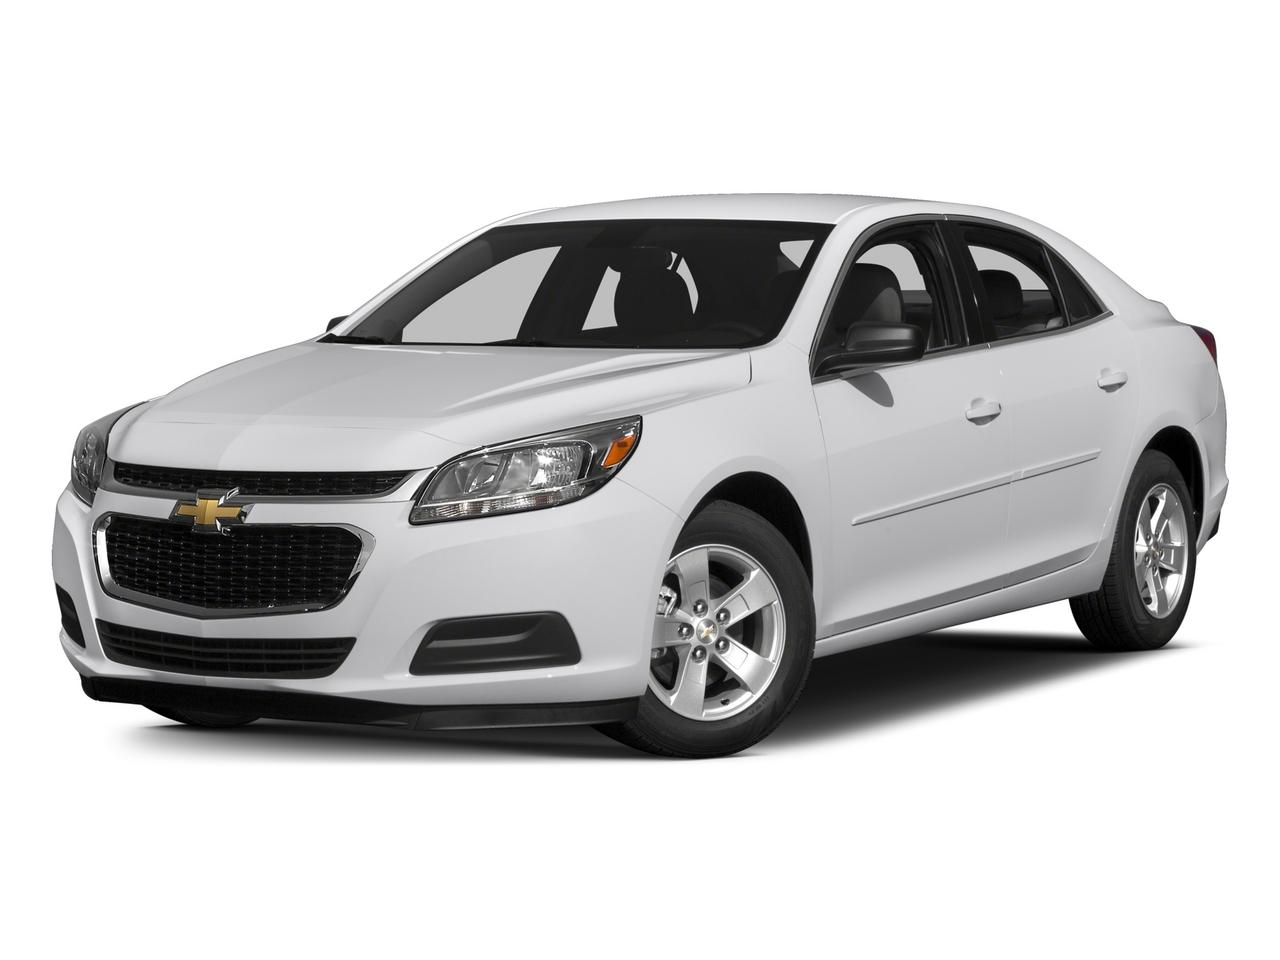 2015 Chevrolet Malibu Vehicle Photo in Nashua, NH 03060